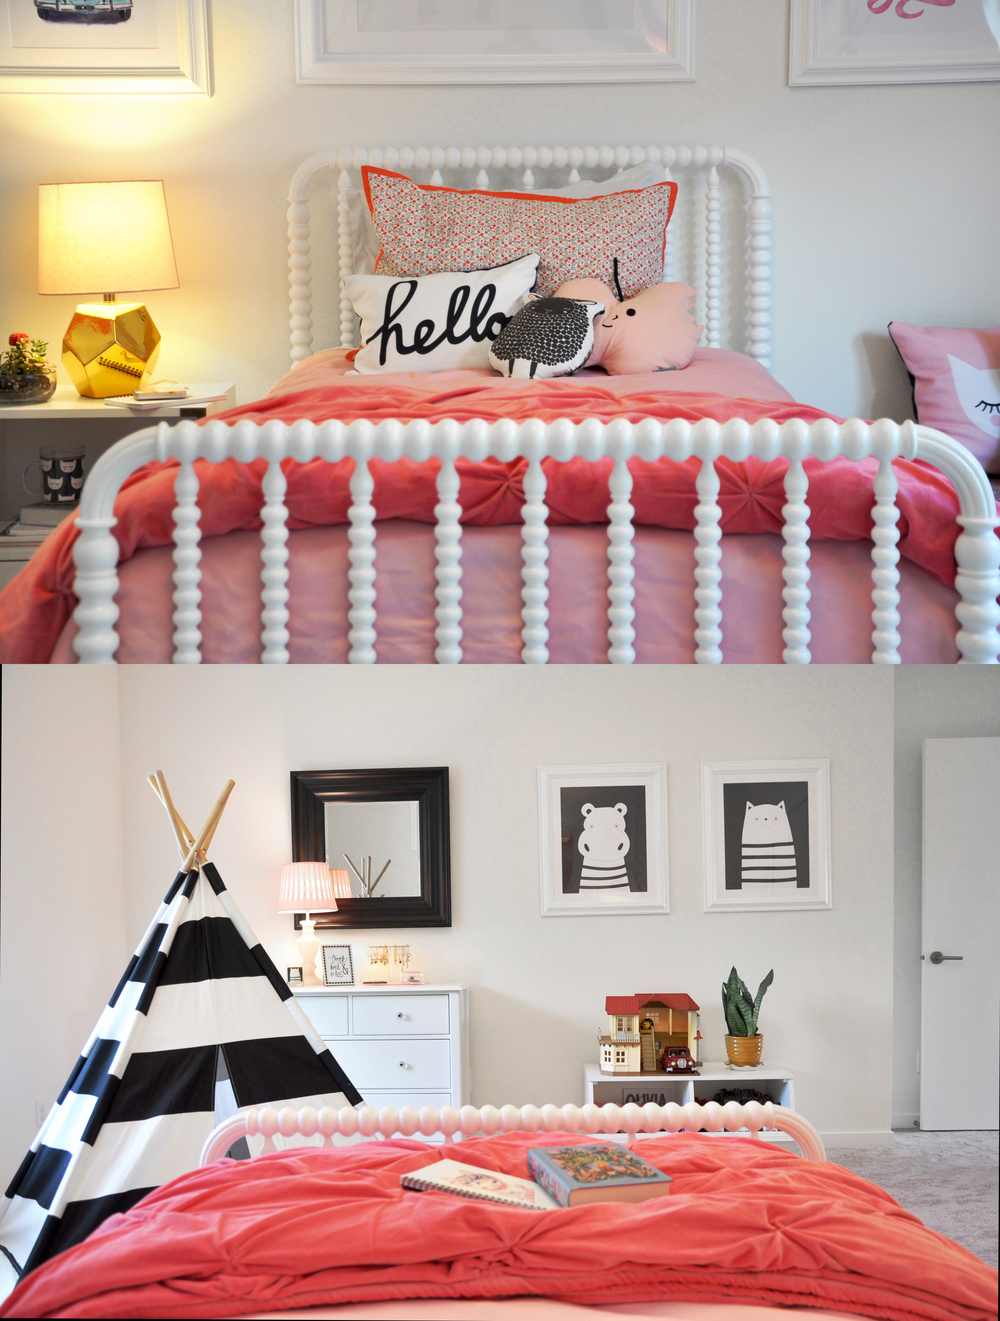 Hippo and Cat Wall Art:Upload Your Own Design Art Print| Low Level Cubby Storage: Storagepalooza |A Teepee to Call Your Own|